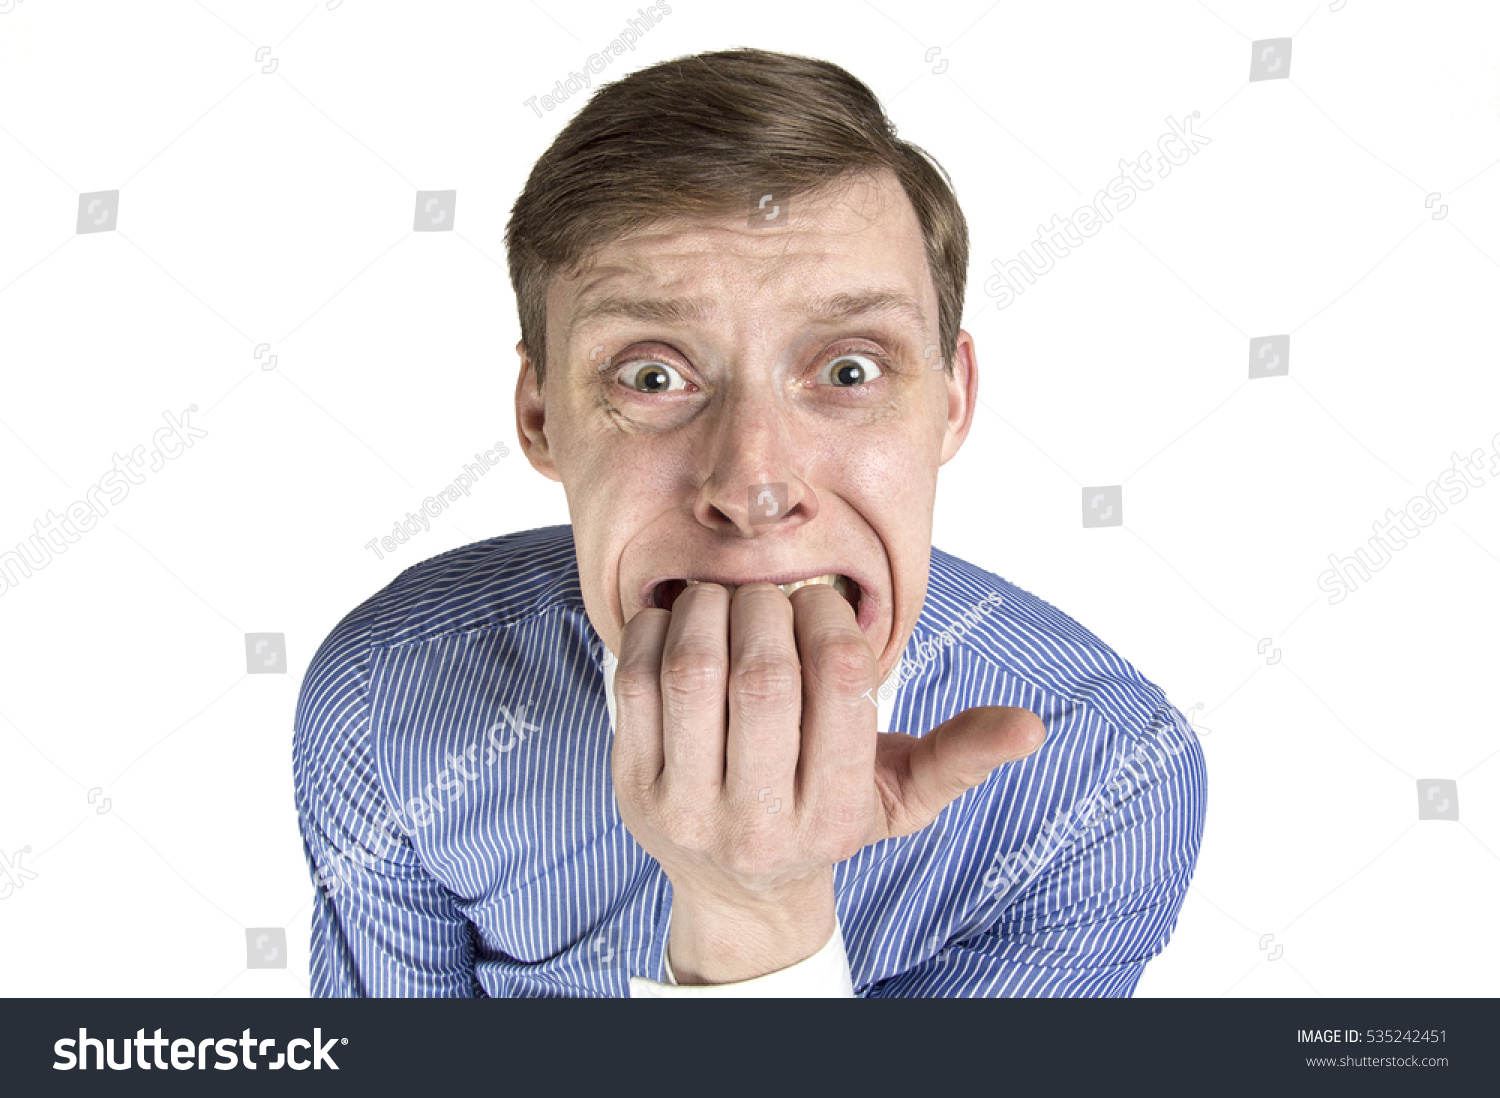 Scared Man Biting His Nails Stock Photo 535242451 - Shutterstock